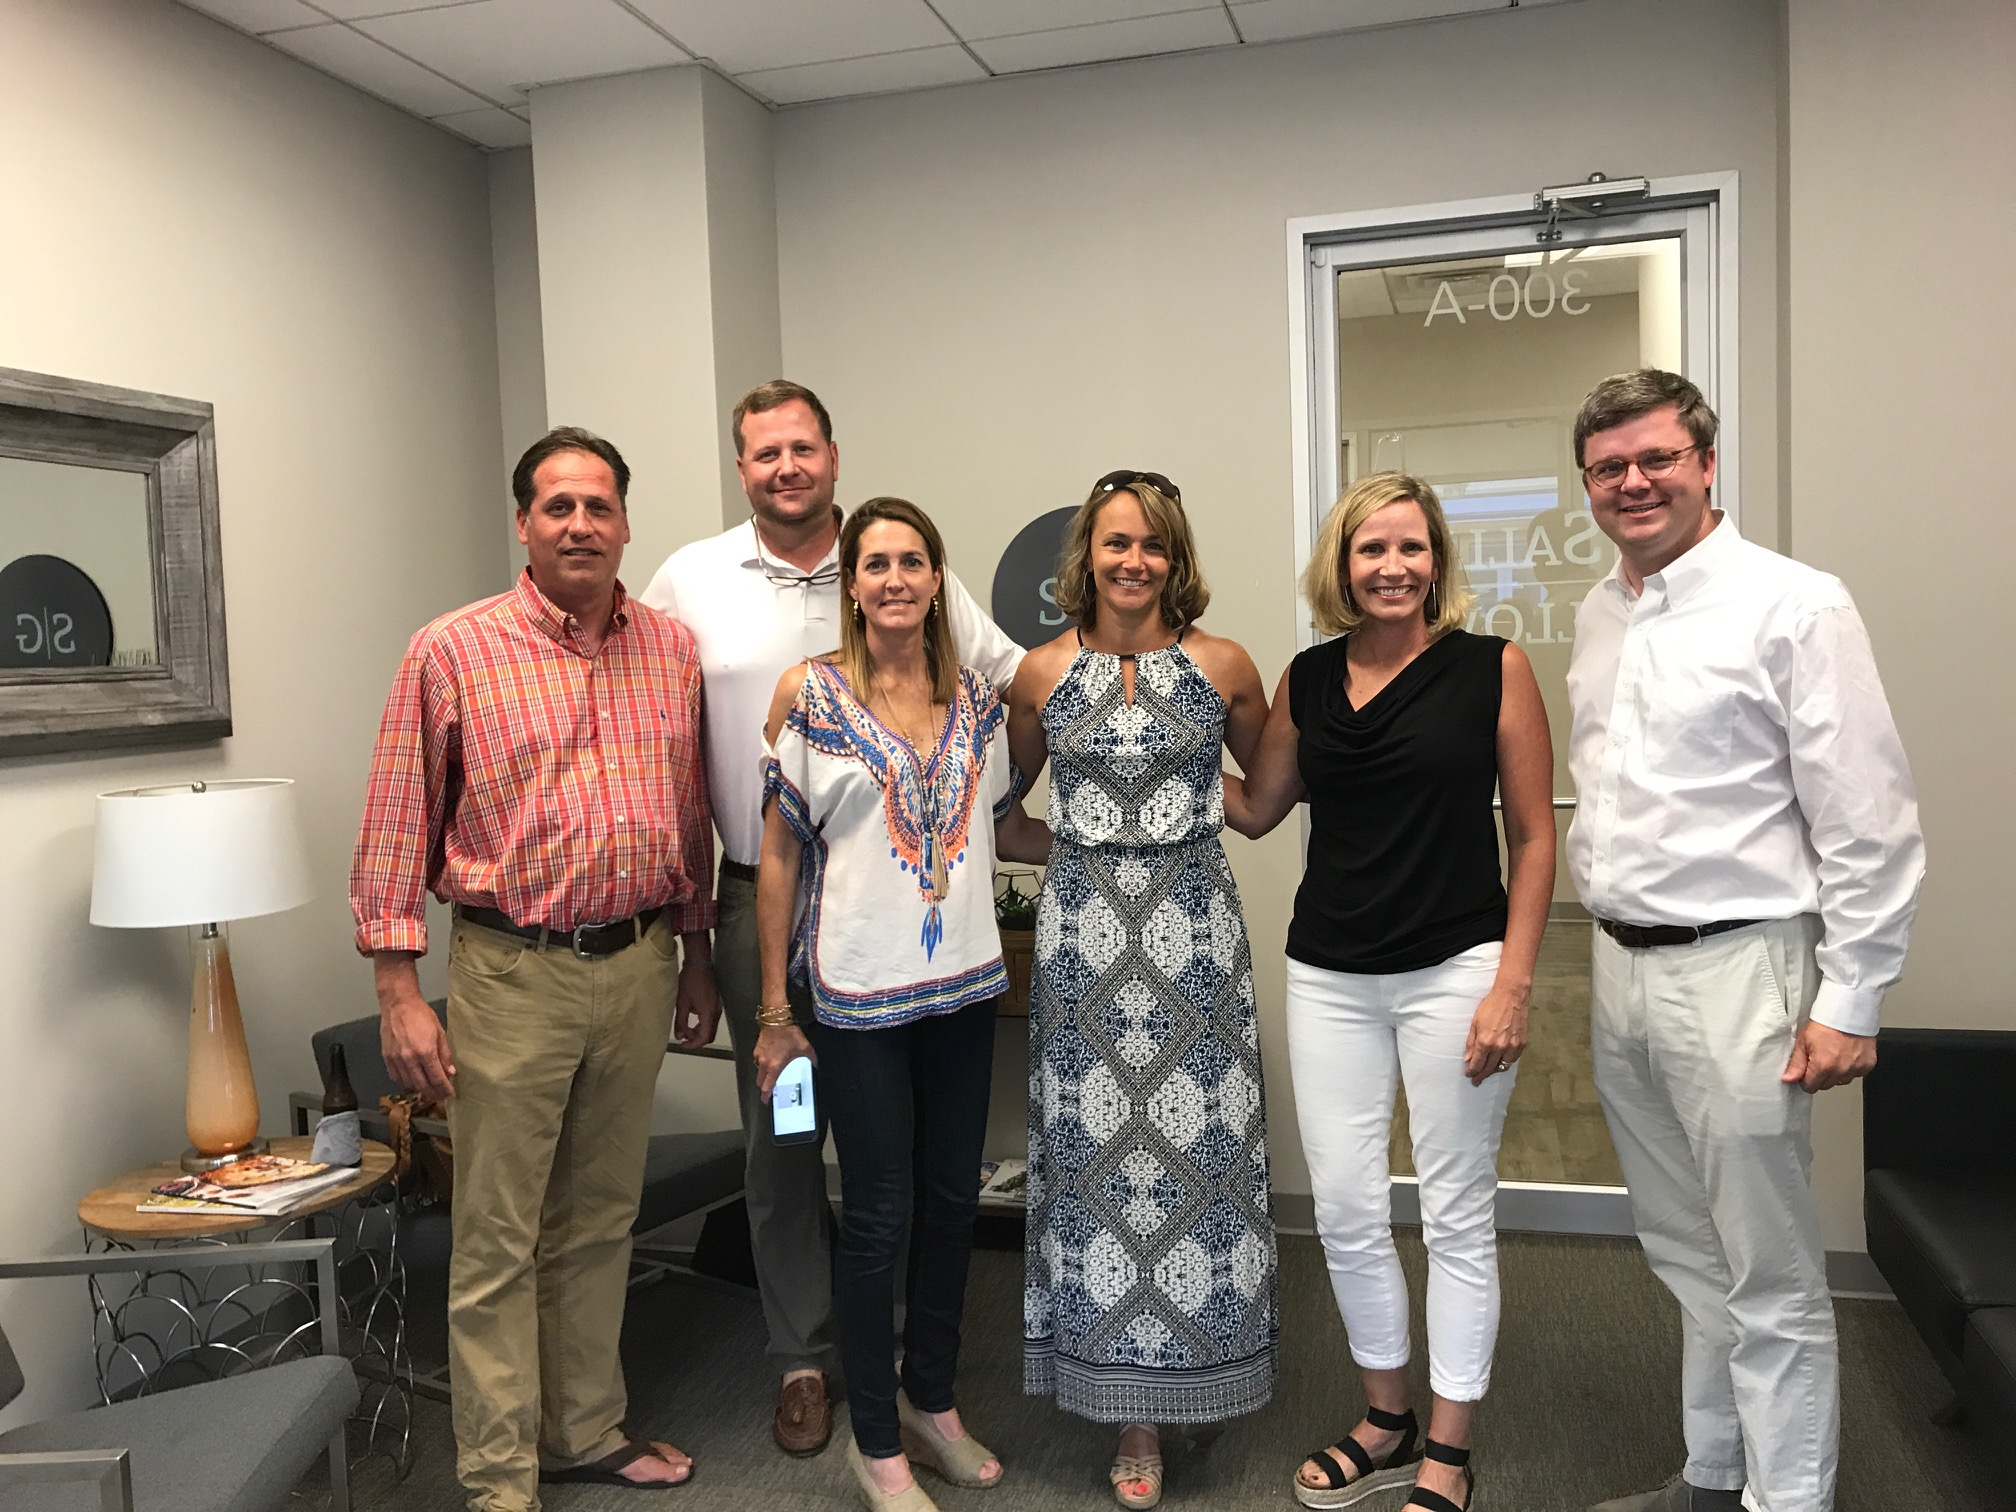 Steve Demarco, Marshall Burns, Melissa Demarco, April Galloway, Laura Burns and Josh Whitley celebrate the grand opening of the Salle Galloway's Daniel Island location at 245 Seven Farms Drive, Suite 300. The practice also has a location in Greenville.